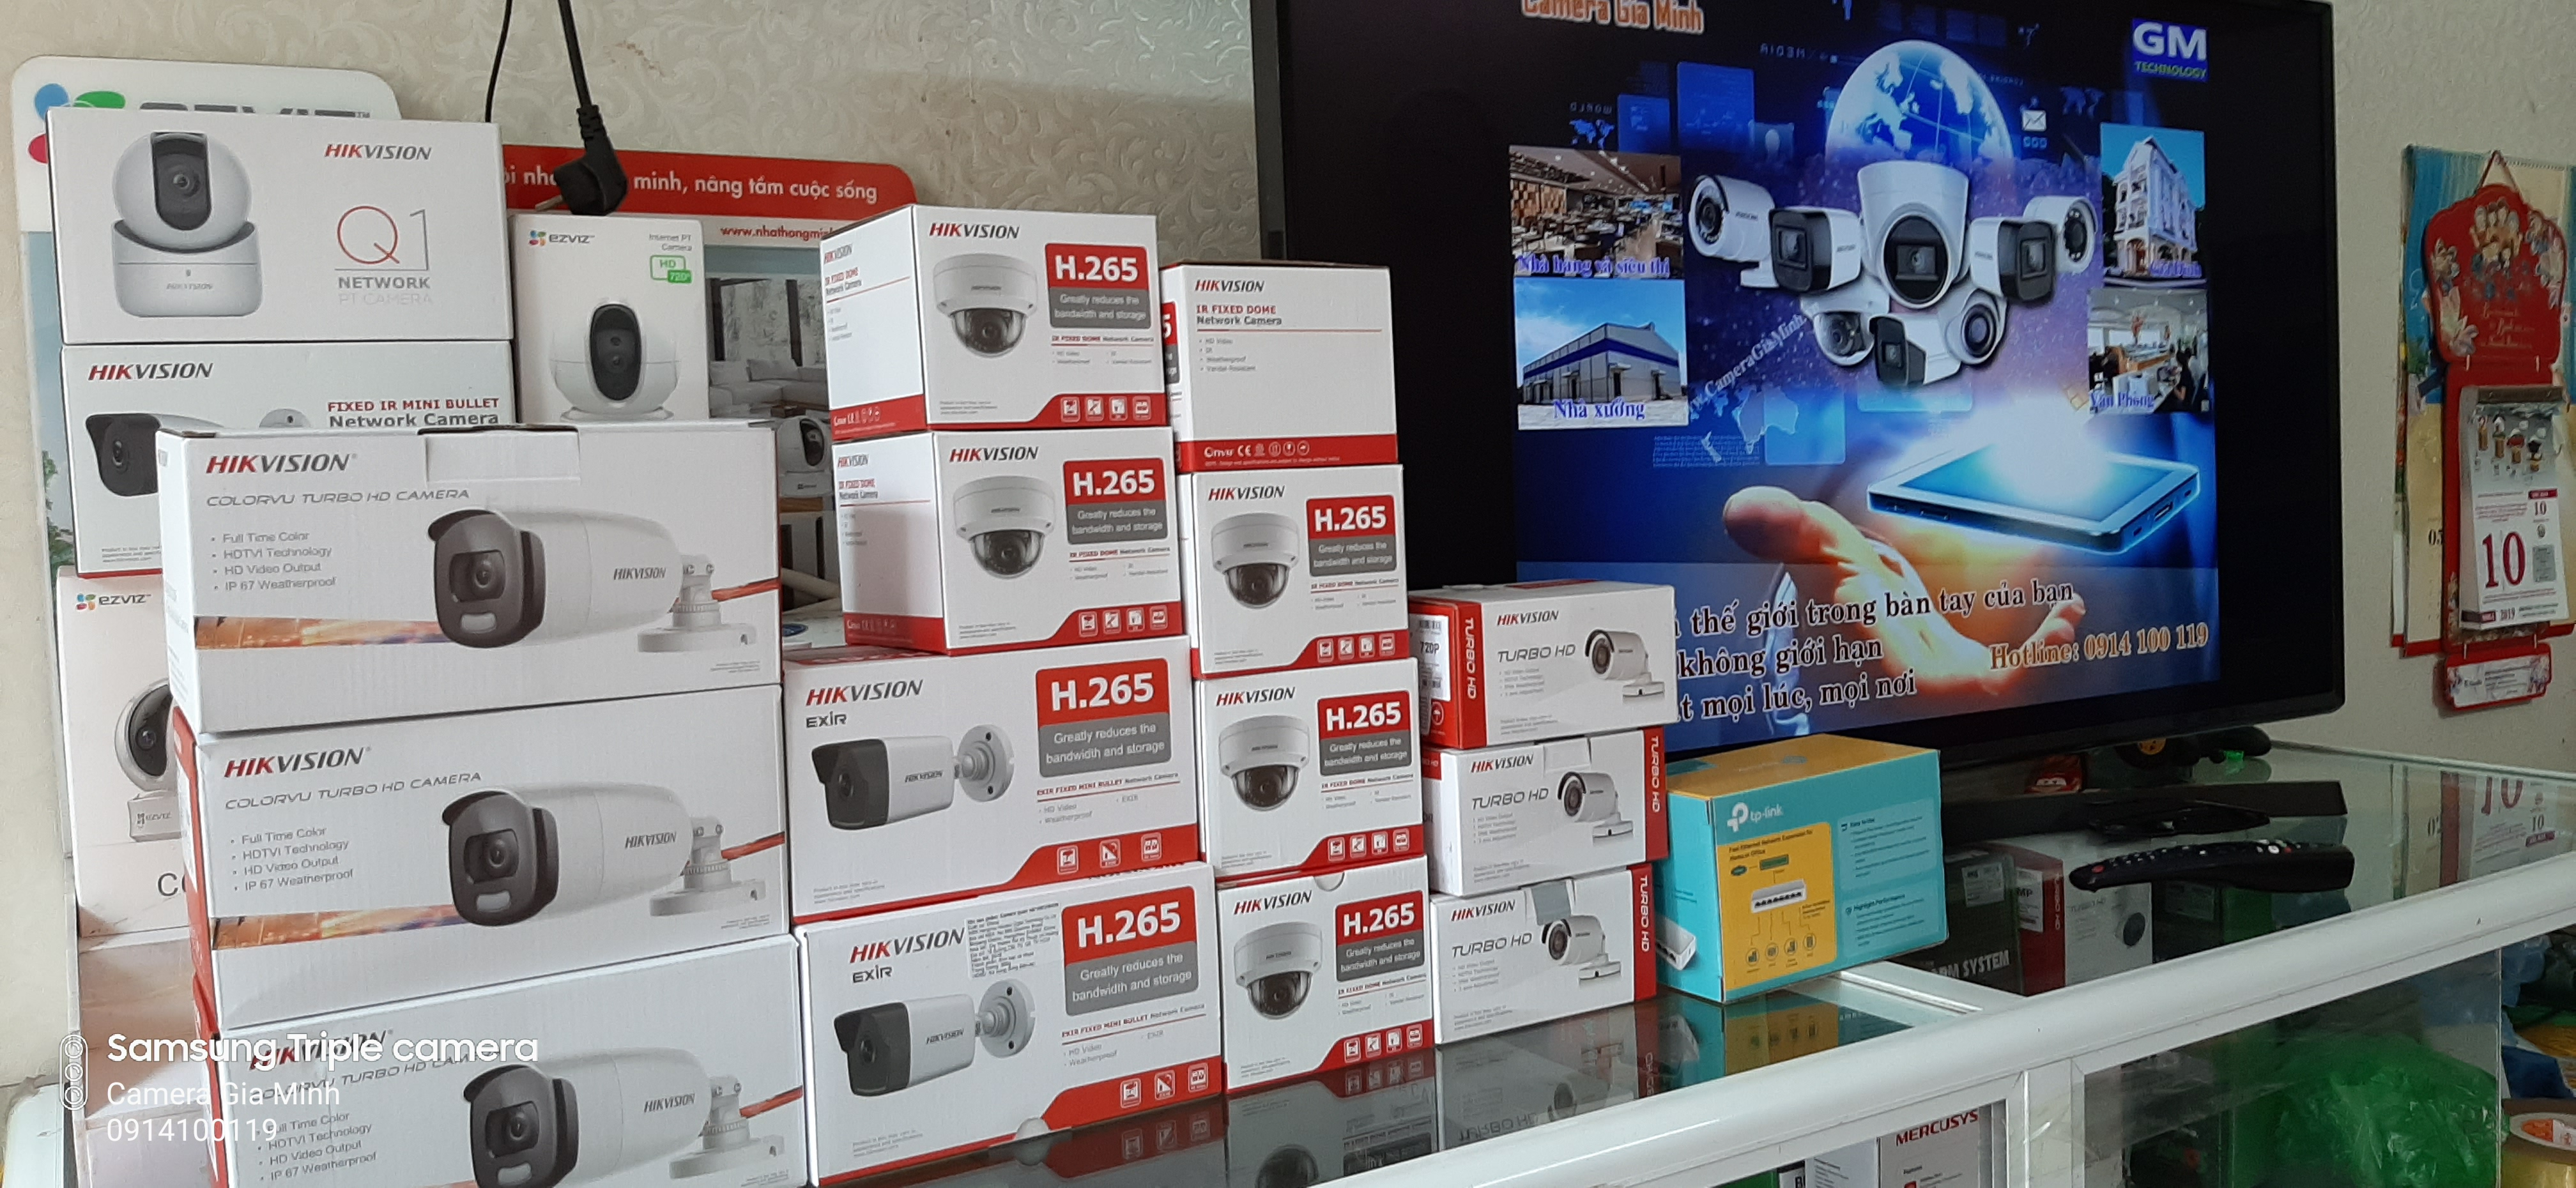 Camera Hikvision Hải Phòng